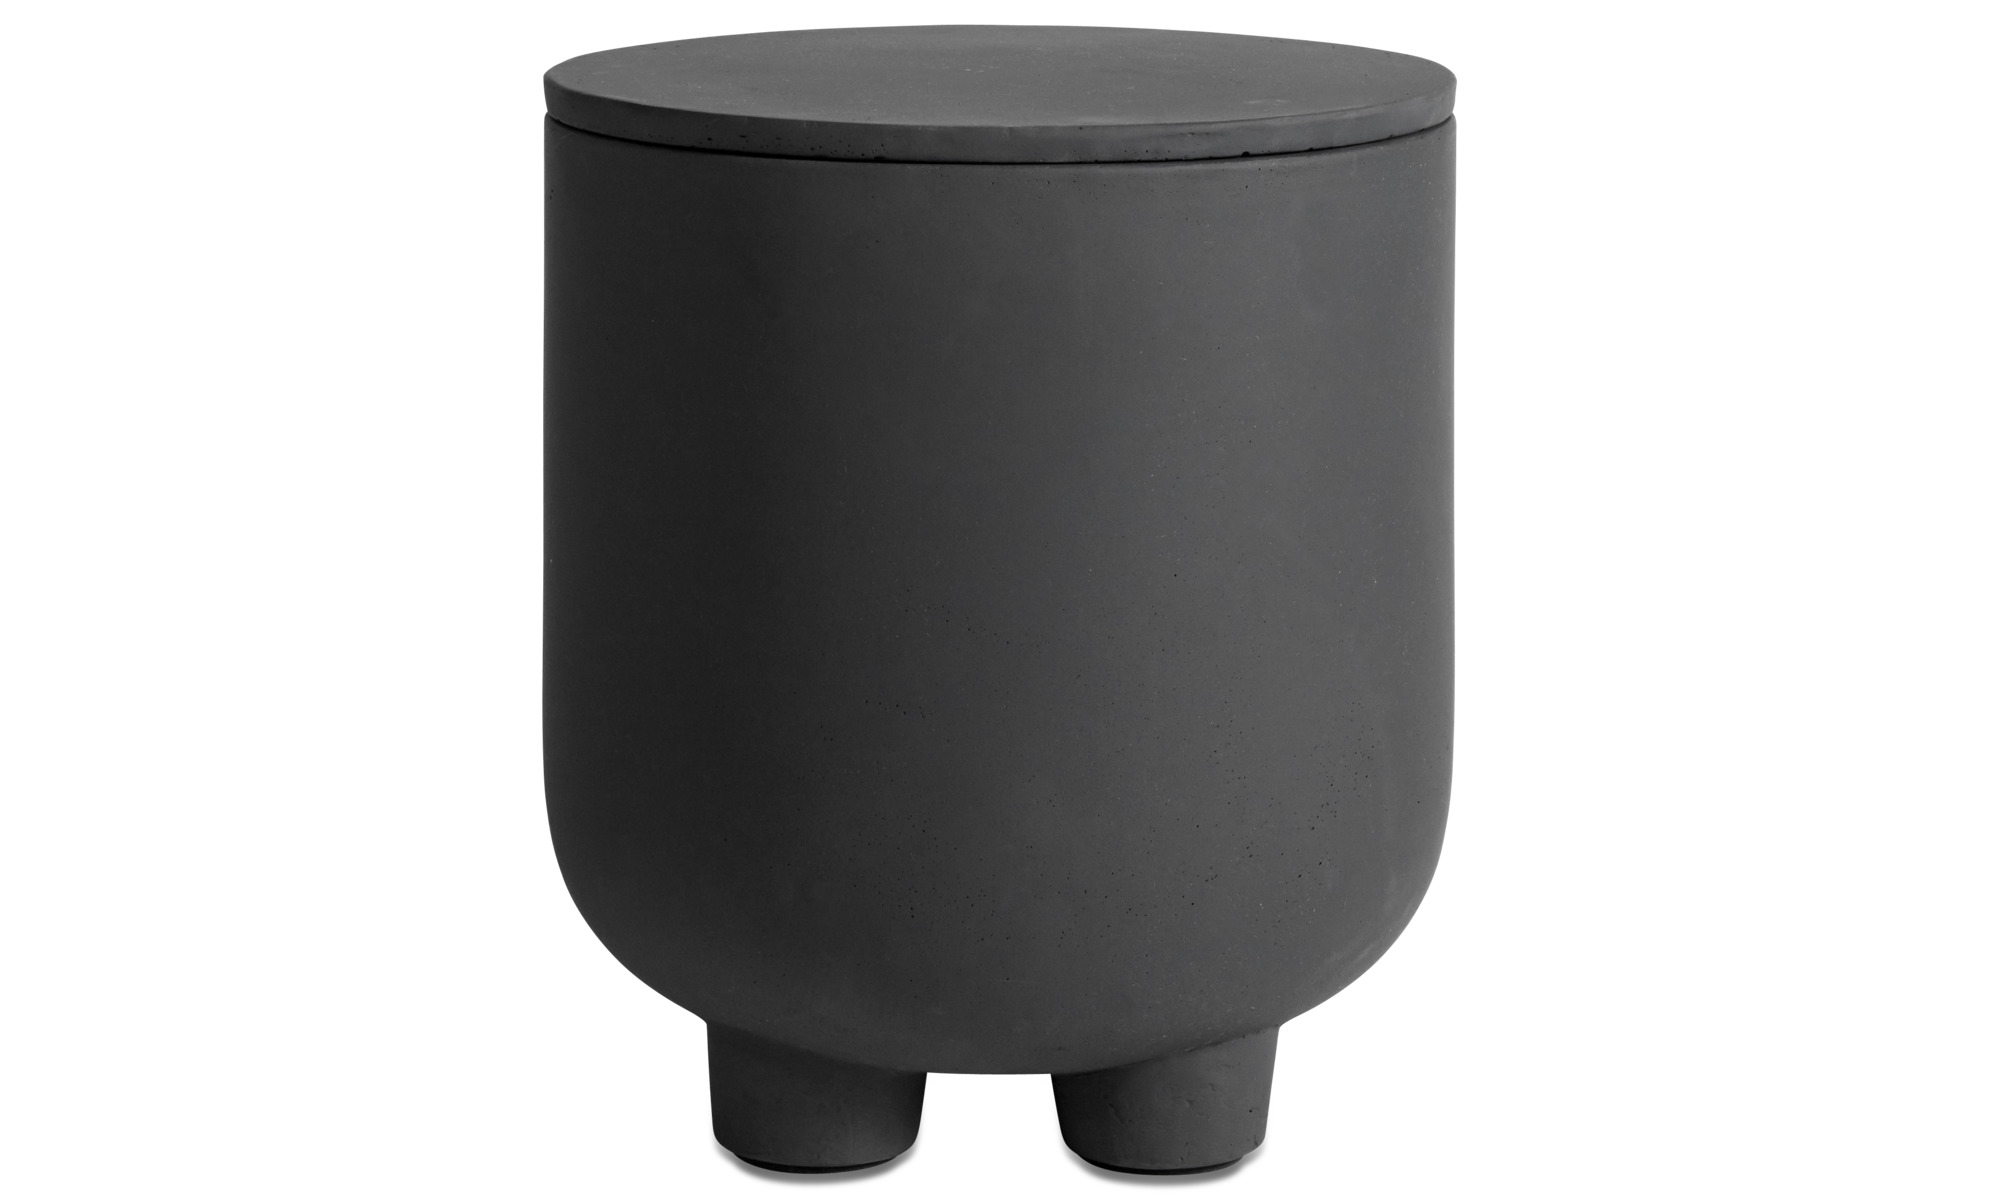 Stools - Exterior outdoor stool - Grey - Fibre cement